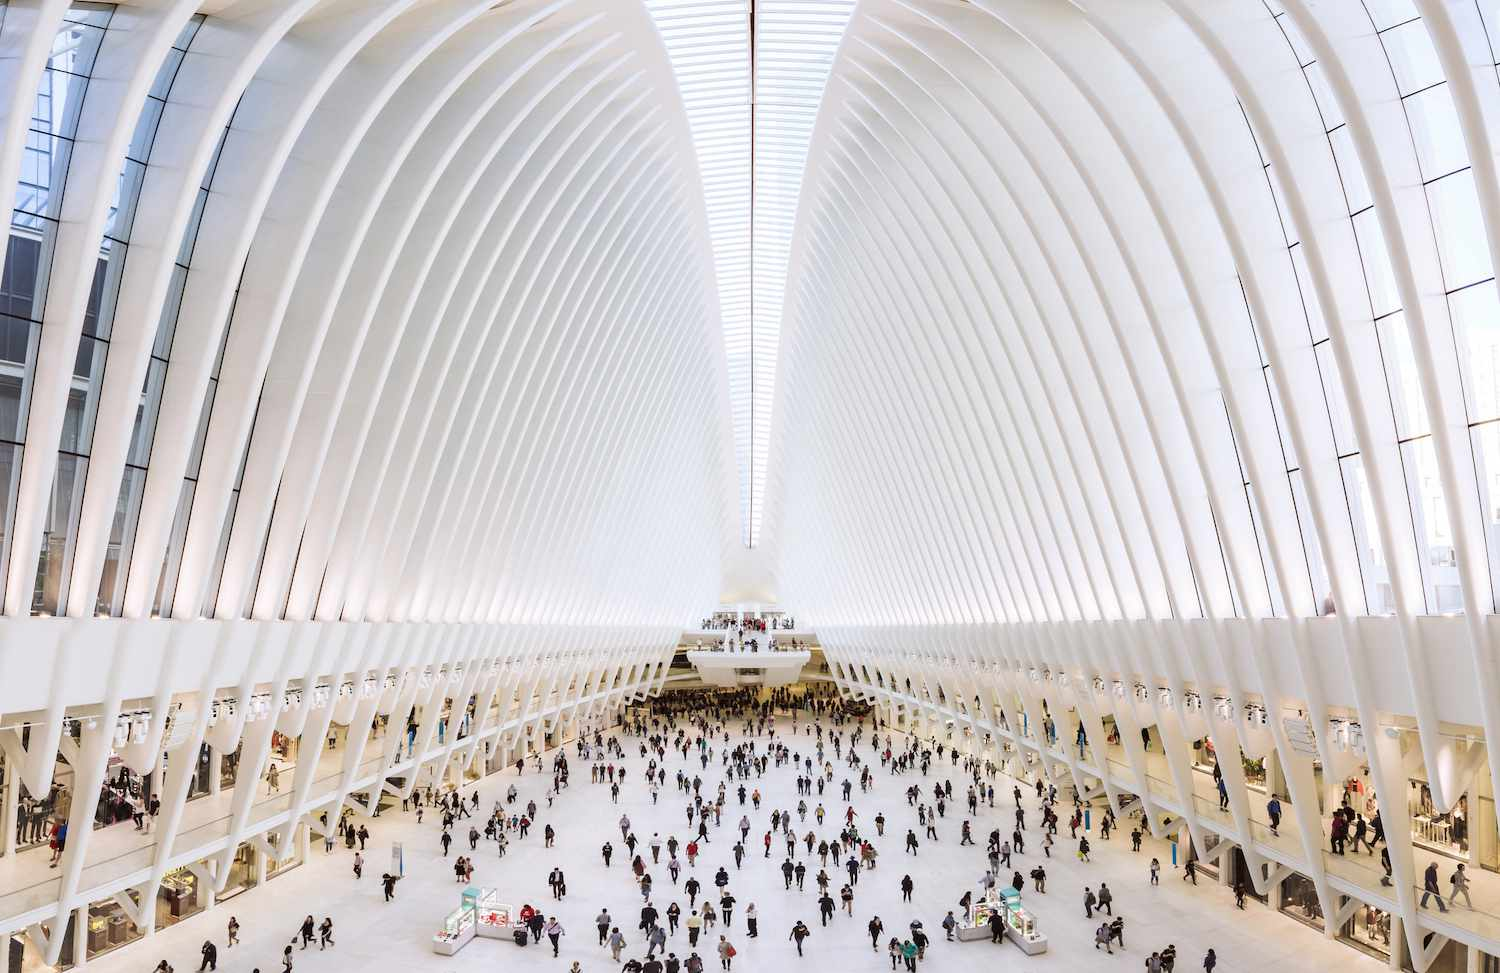 The World Trade Center Transportation Hub central station, known as Oculus.